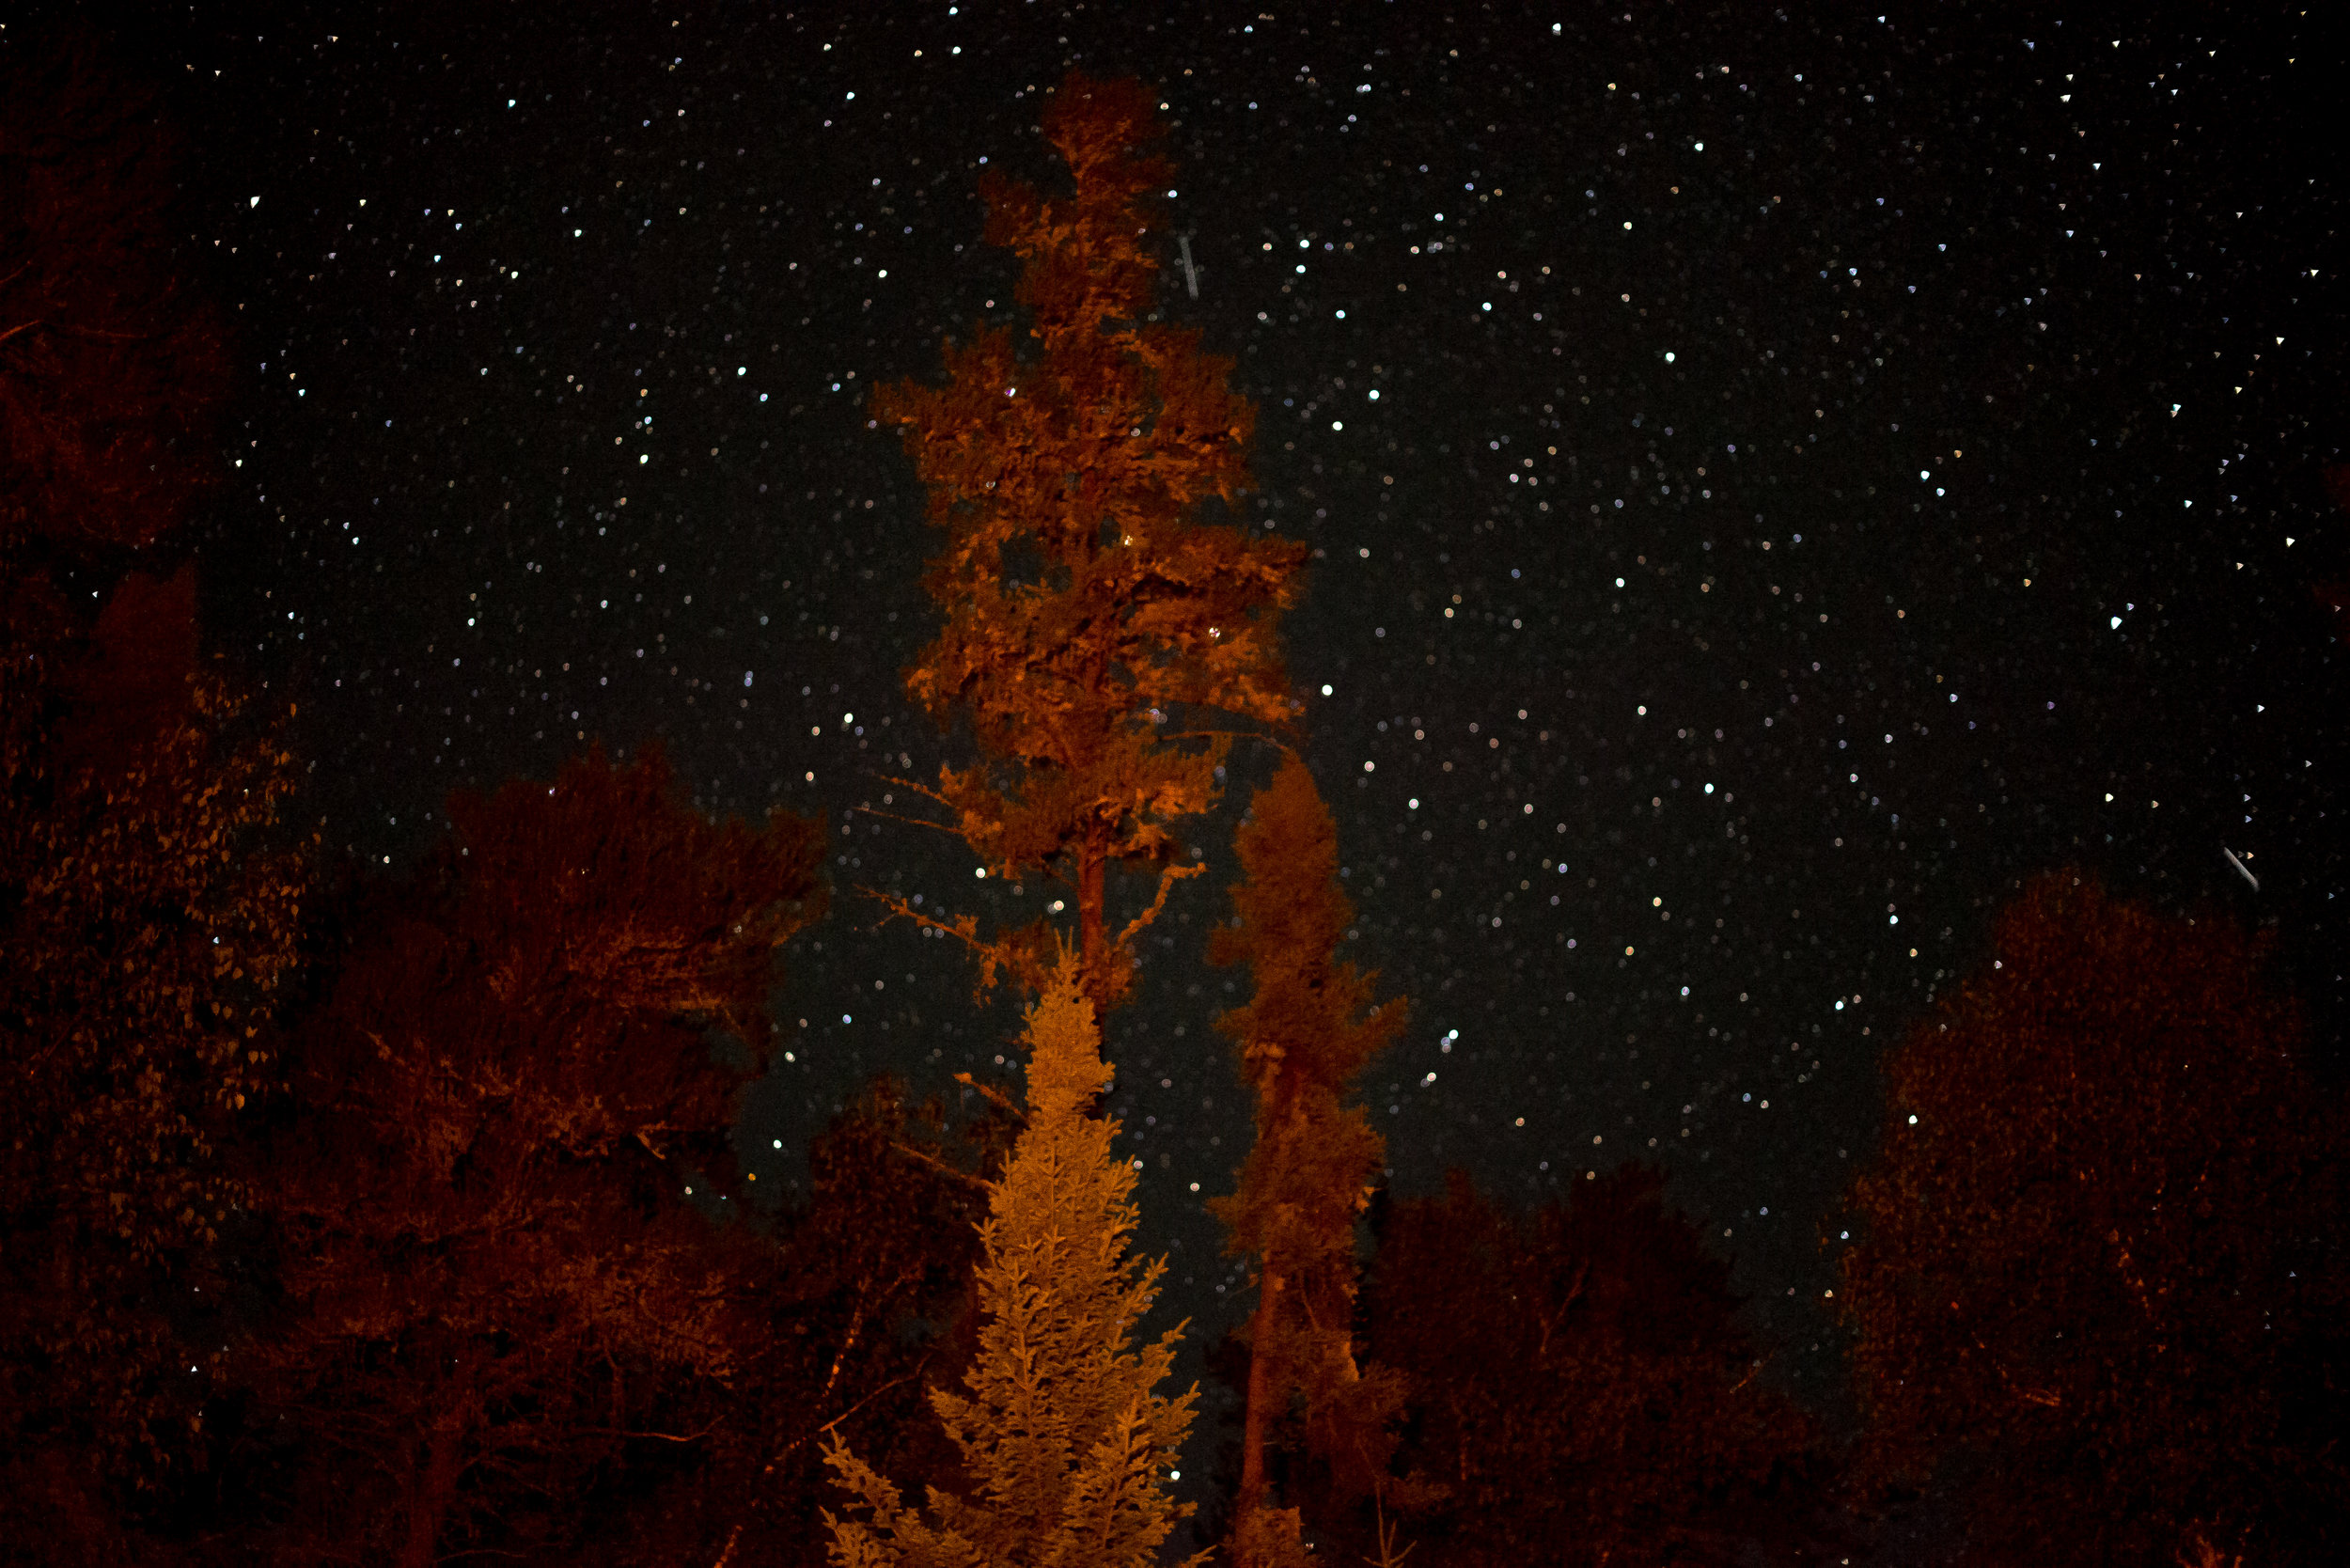 Star Photo With The Trees Lit By The Firelight...